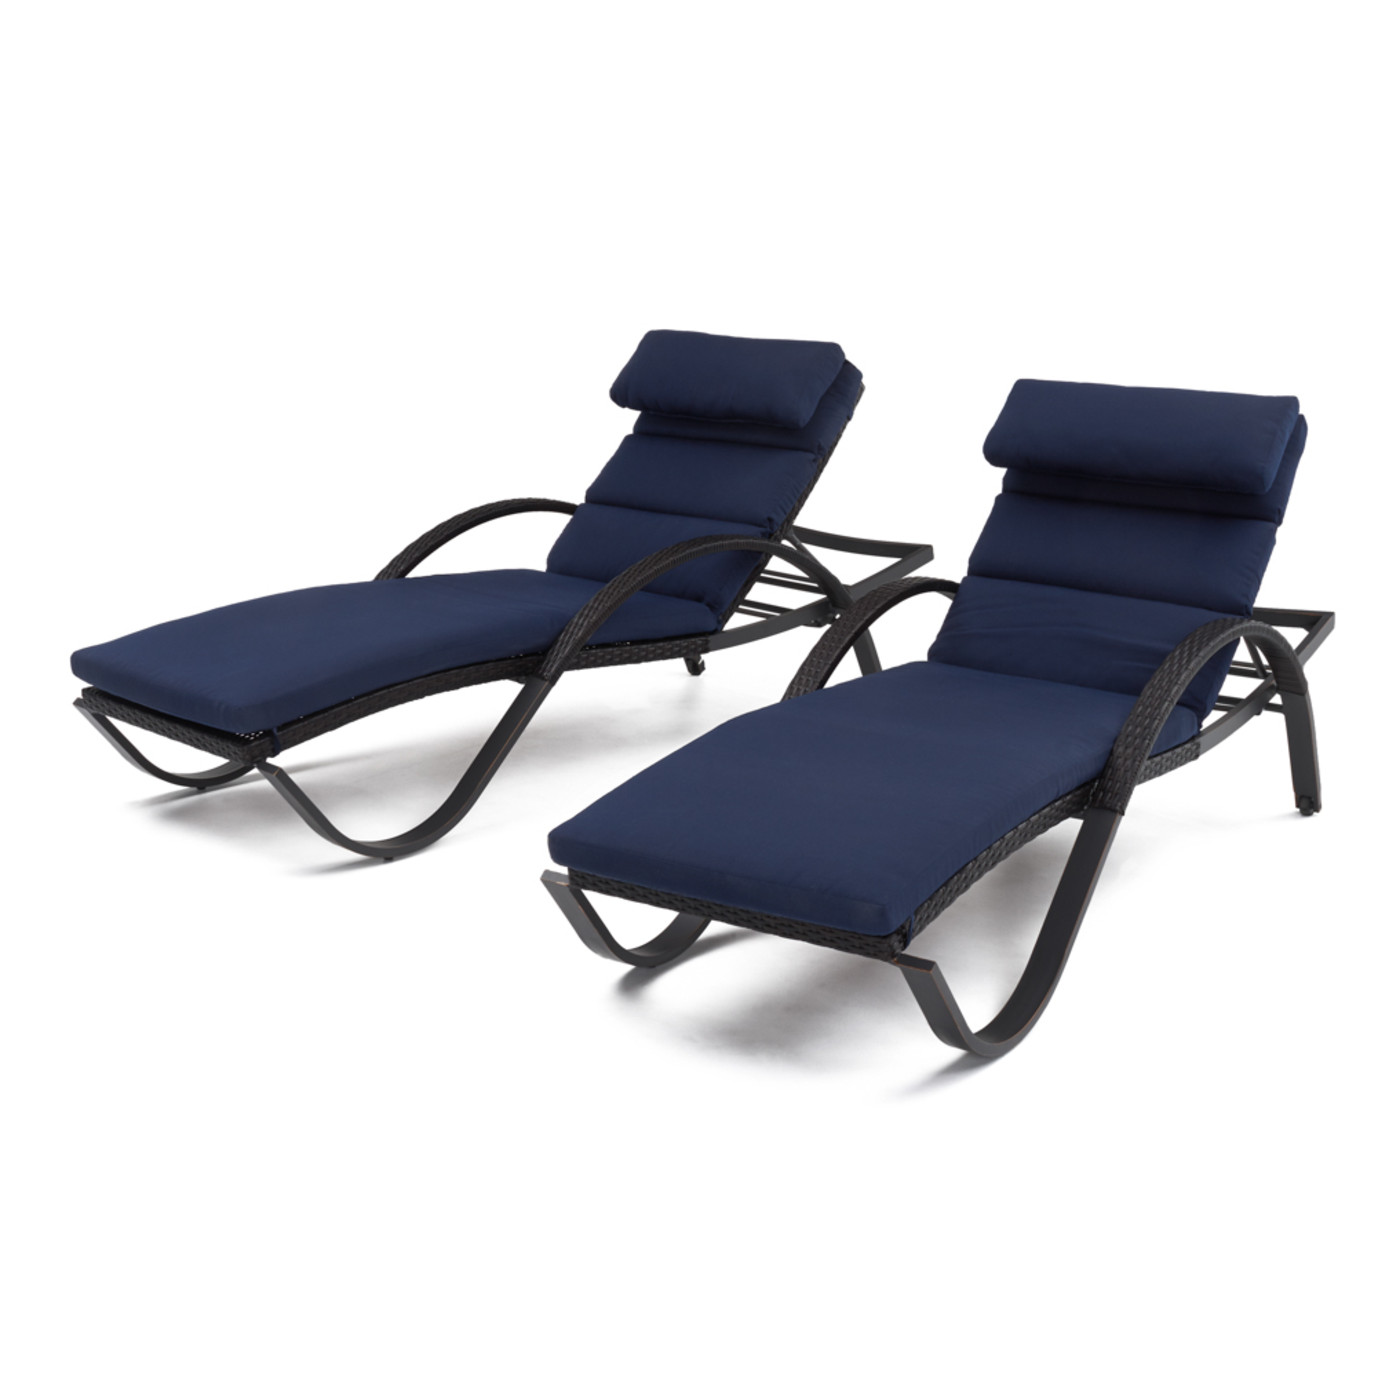 Deco chaise lounges with cushions navy blue rst brands for Blue chaise longue